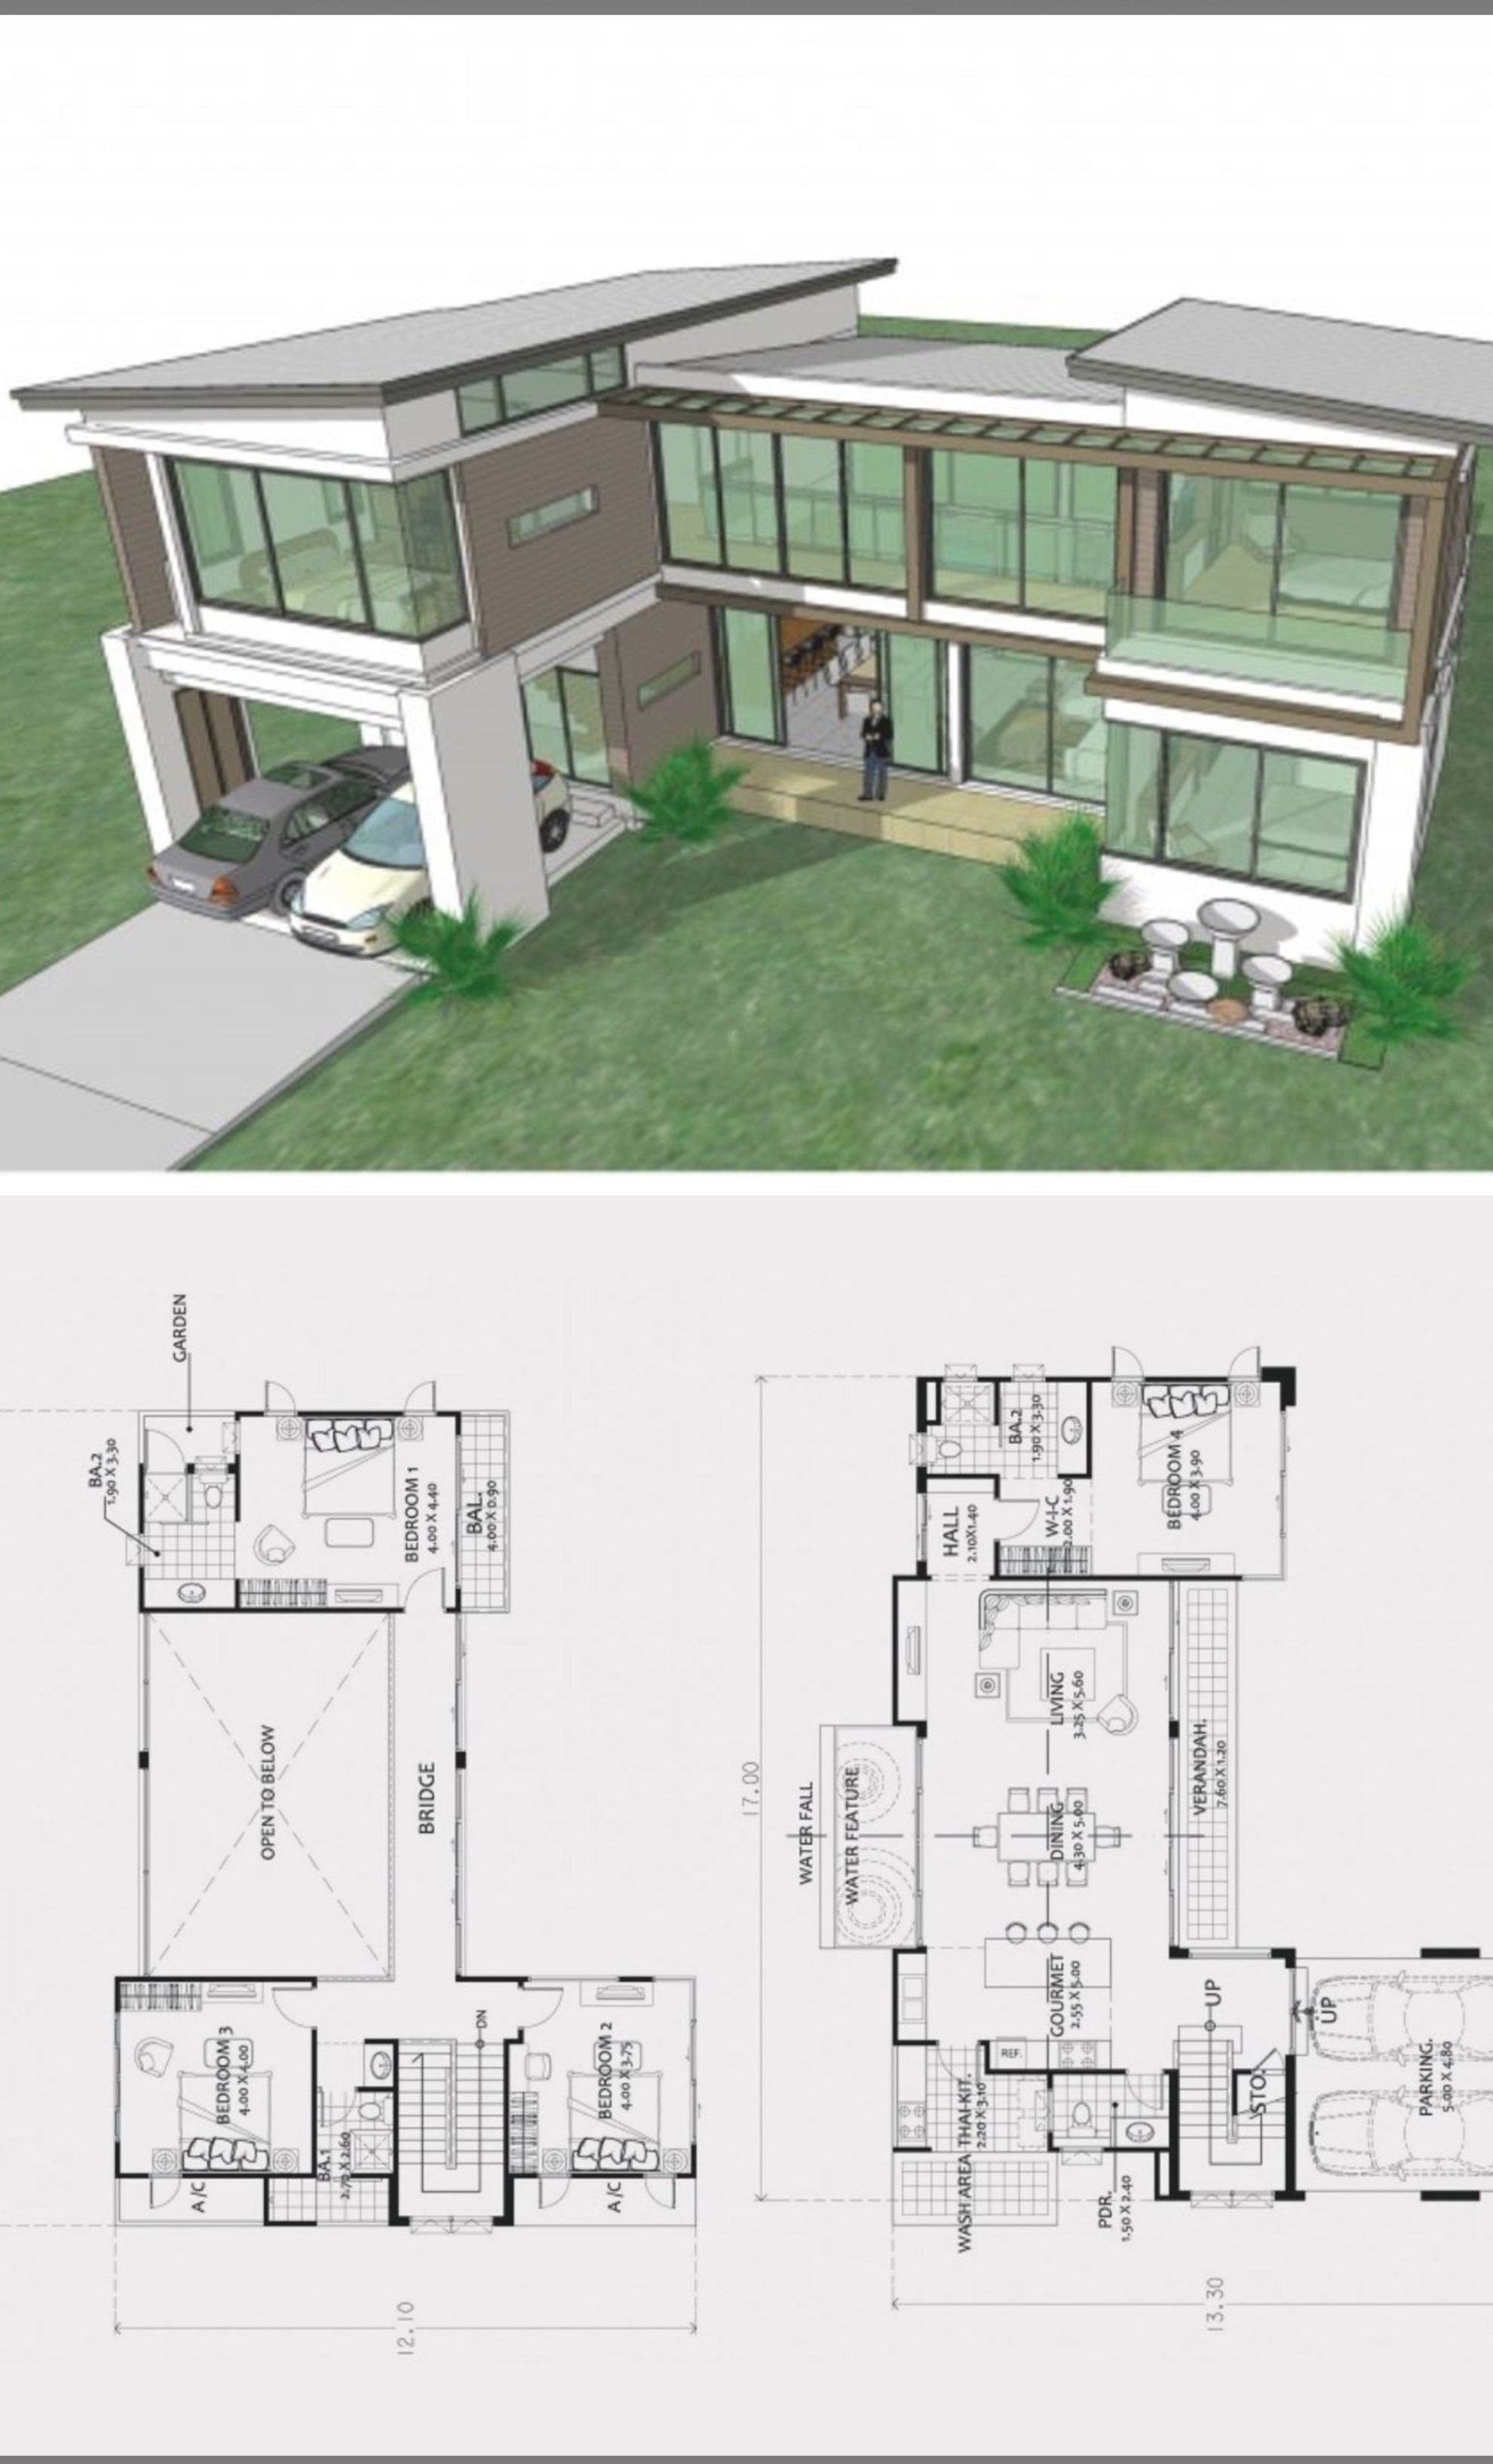 Home Design Plan 17x13m With 4 Bedrooms Home Design With Plan Big Modern Houses House Layout Plans Contemporary House Plans